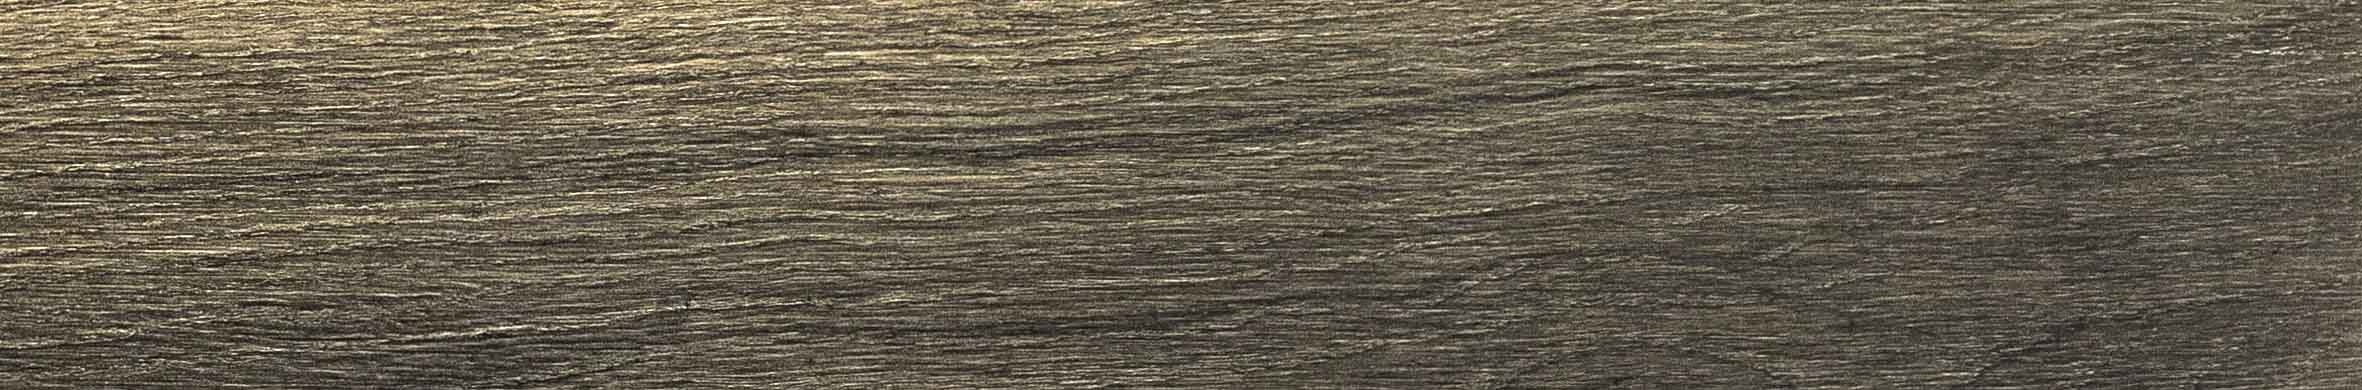 Planches de Rex Choco Slate-hammered 10mm 20 x 120